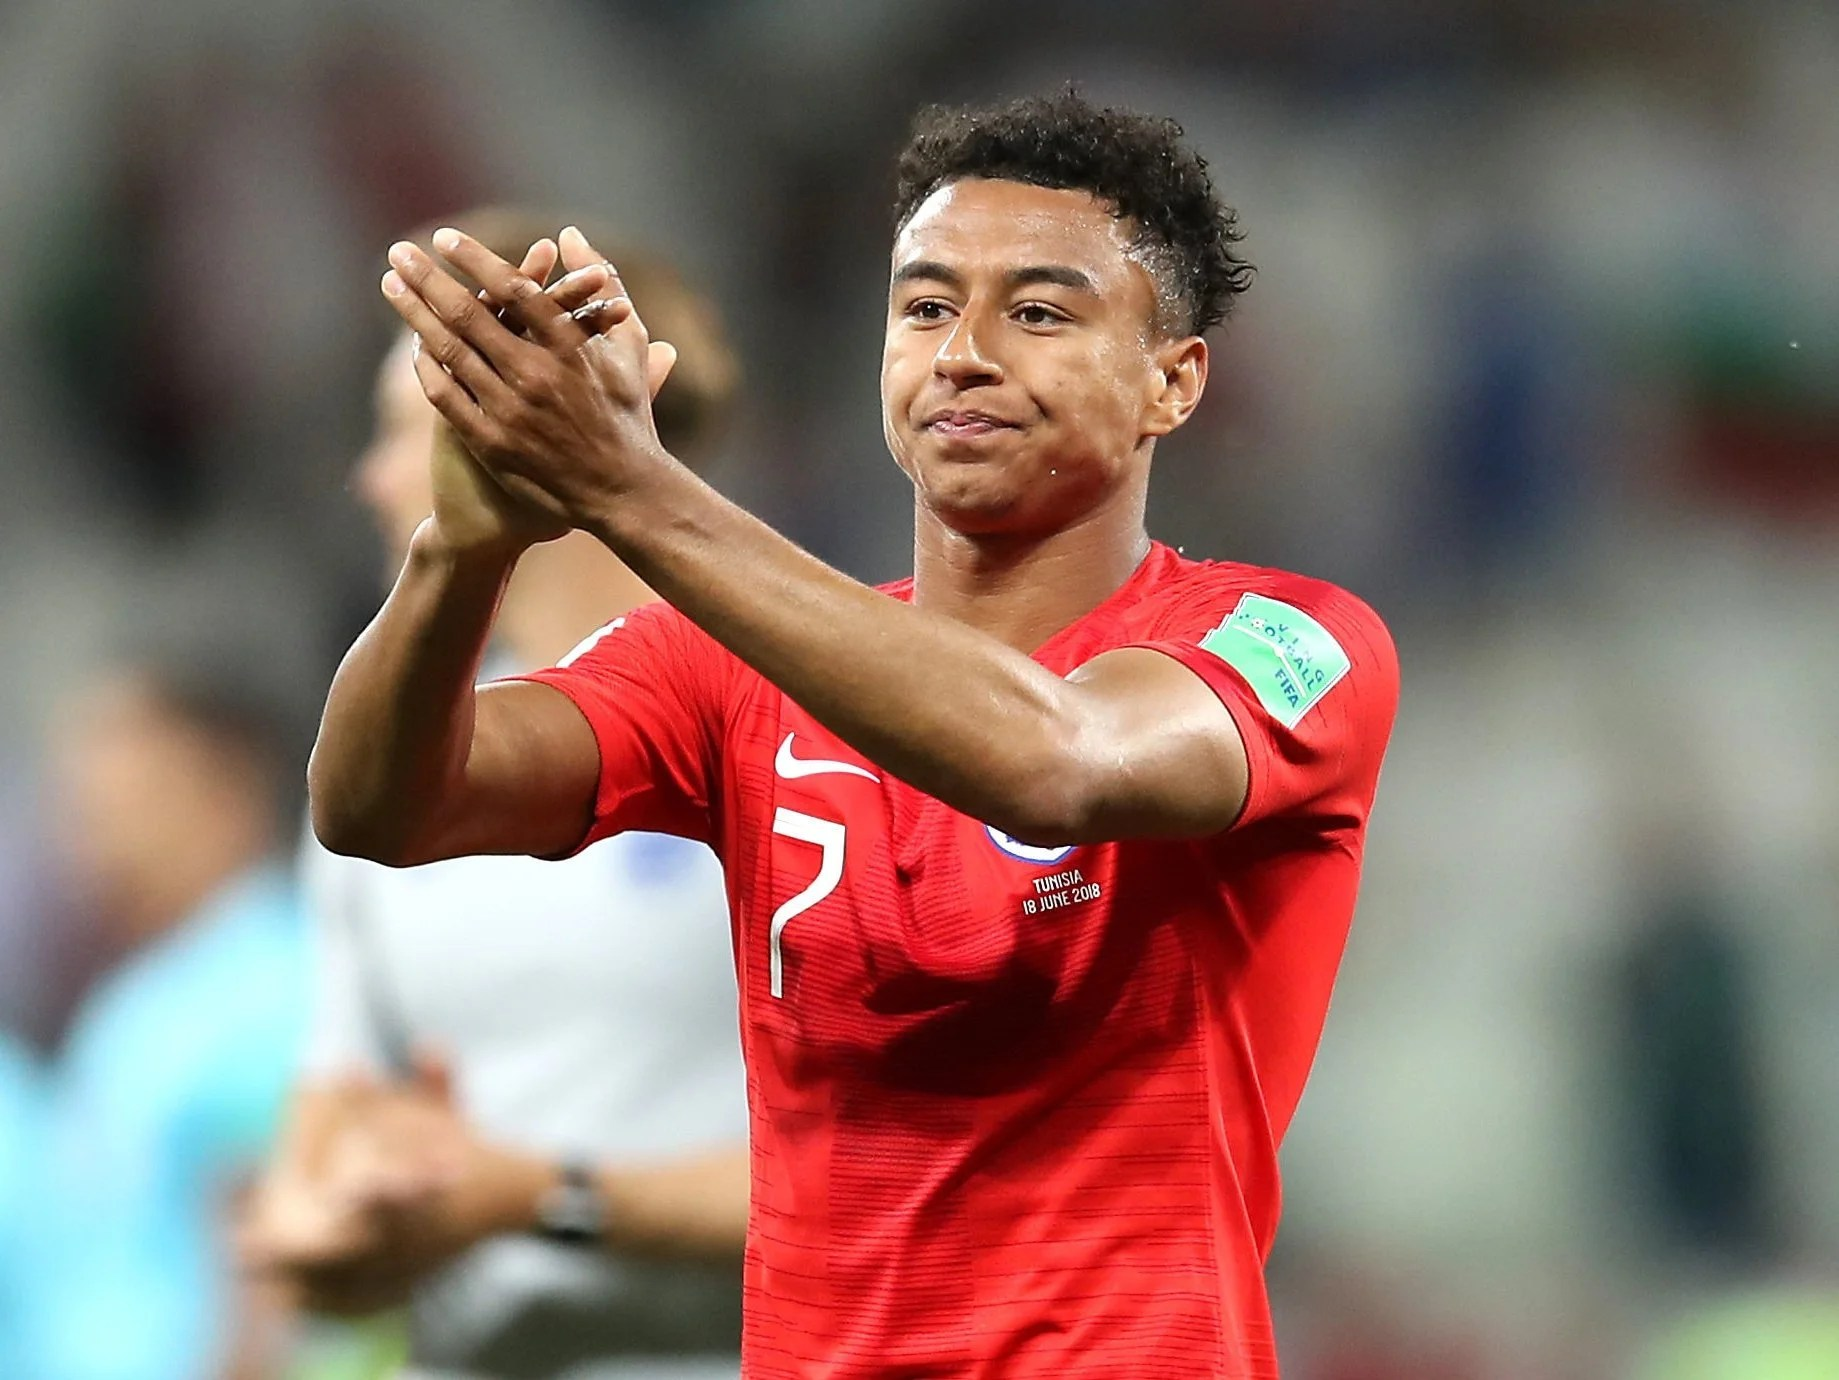 World Cup 2018  Incisive and intelligent  Jesse Lingard remains     World Cup 2018  Incisive and intelligent  Jesse Lingard remains integral to  England s hopes in Russia   The Independent